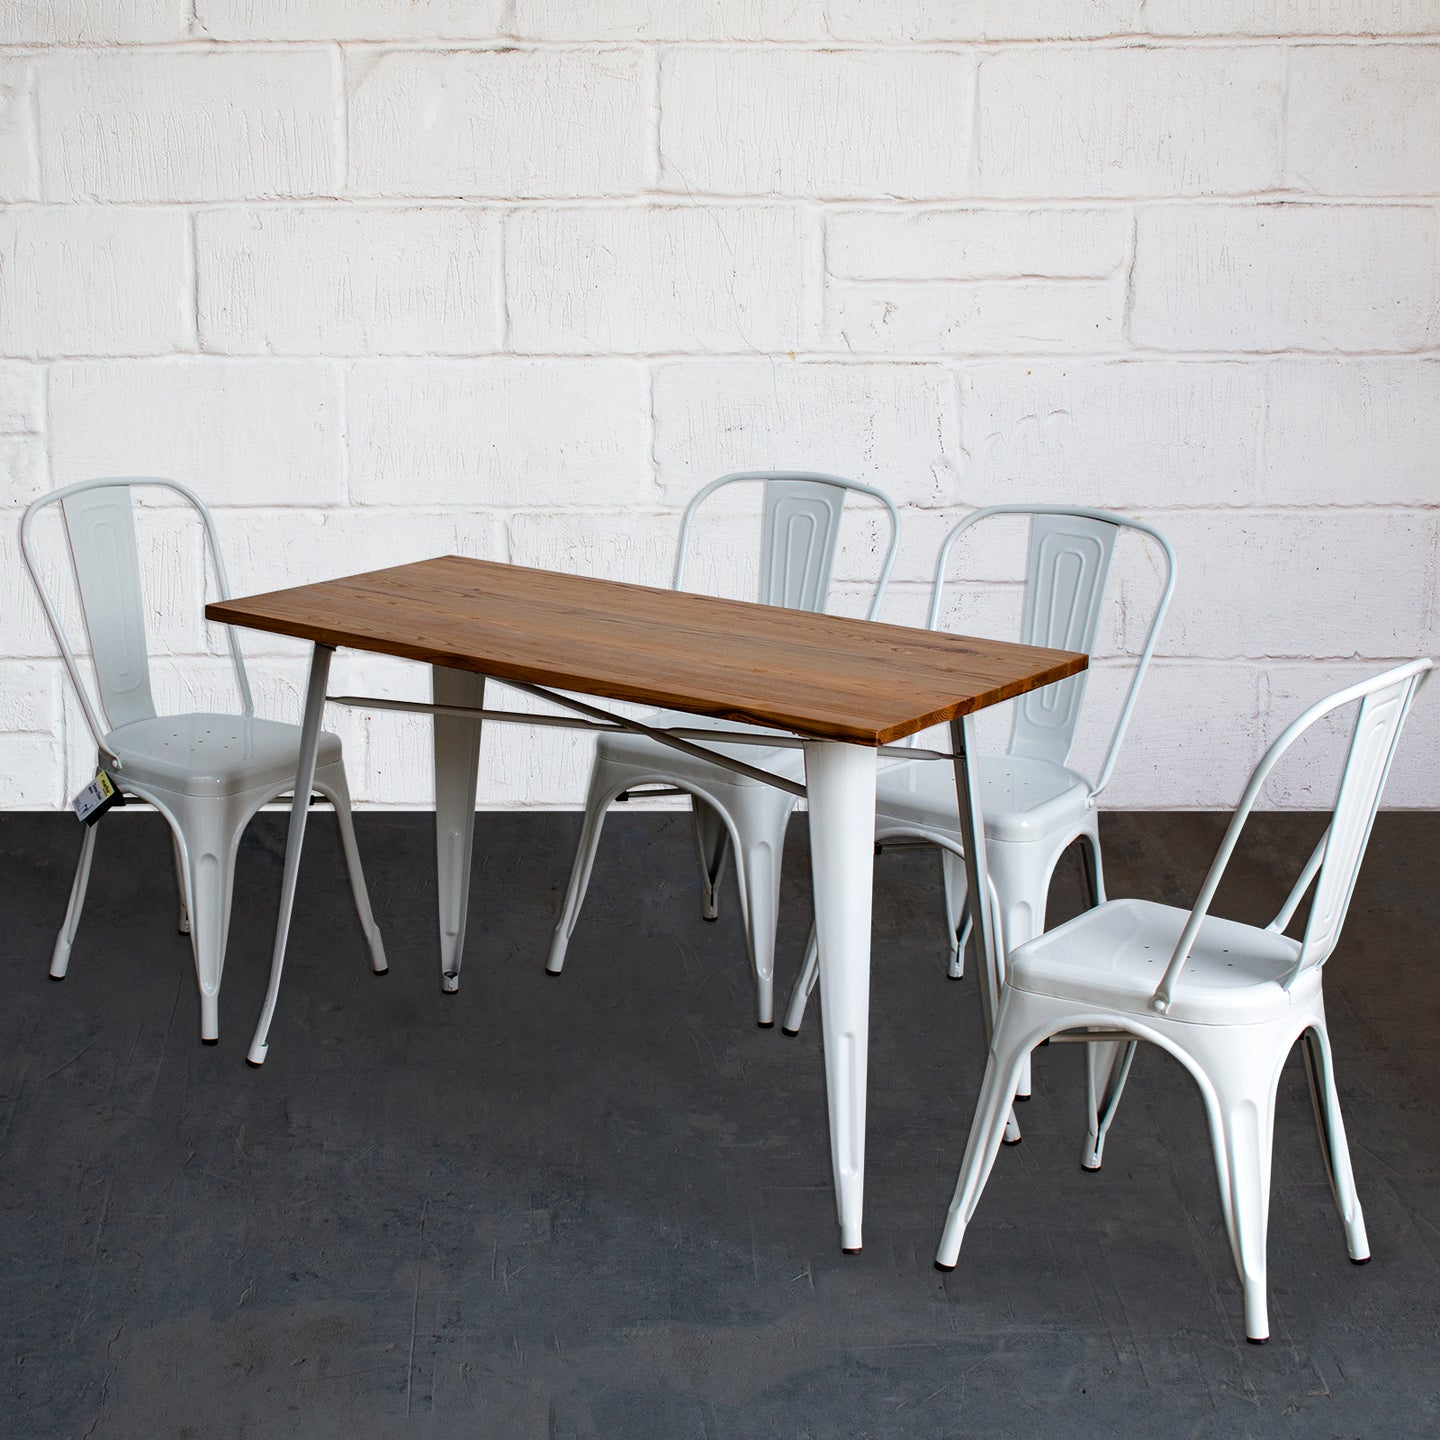 5PC Prato Table & 4 Siena Chairs Set - White